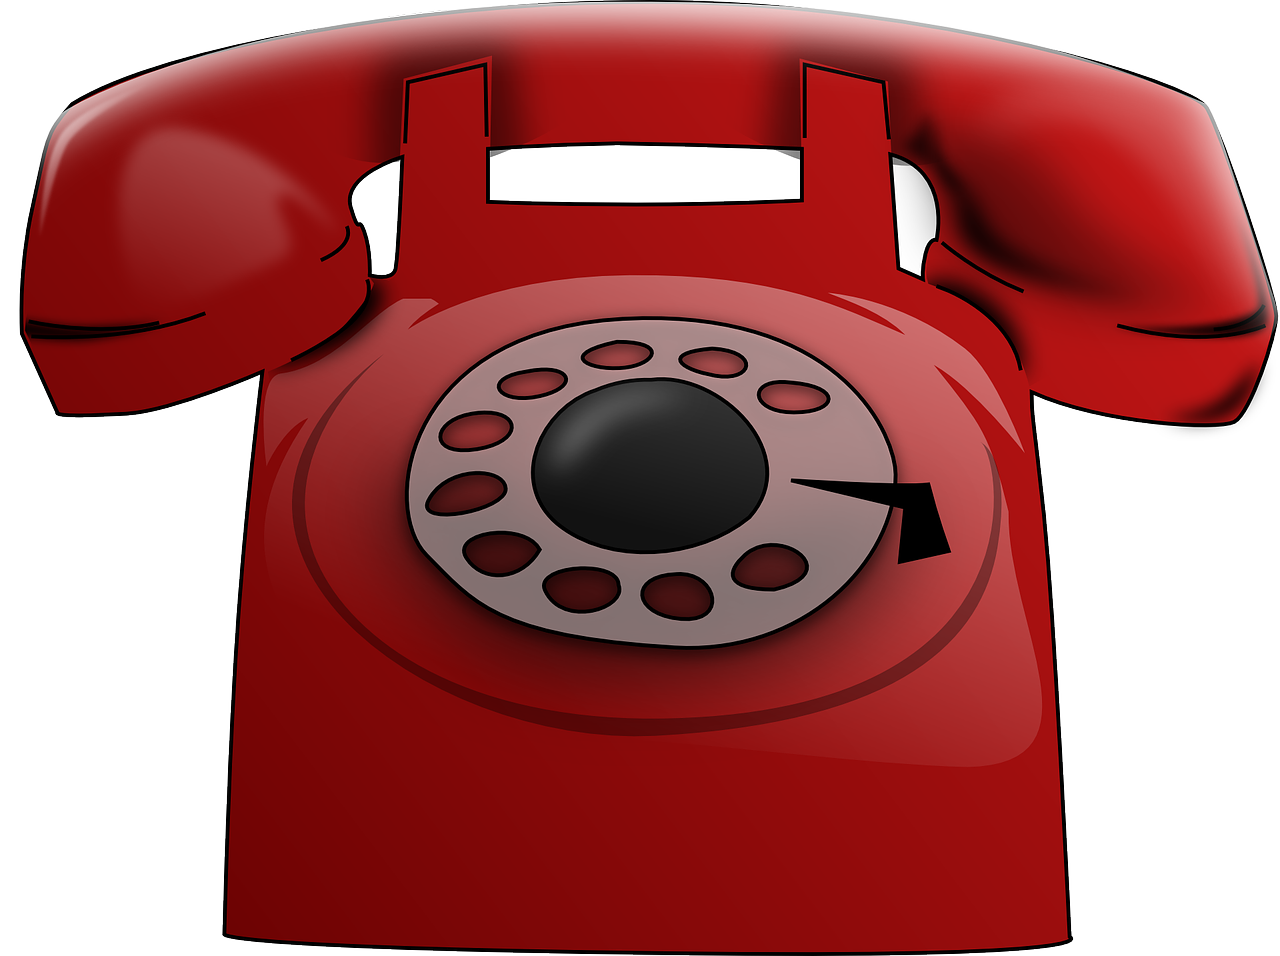 dial plate,telephone,phone,dial,communicate,photorealism,gloss,red,3d,free vector graphics,free pictures, free photos, free images, royalty free, free illustrations, public domain